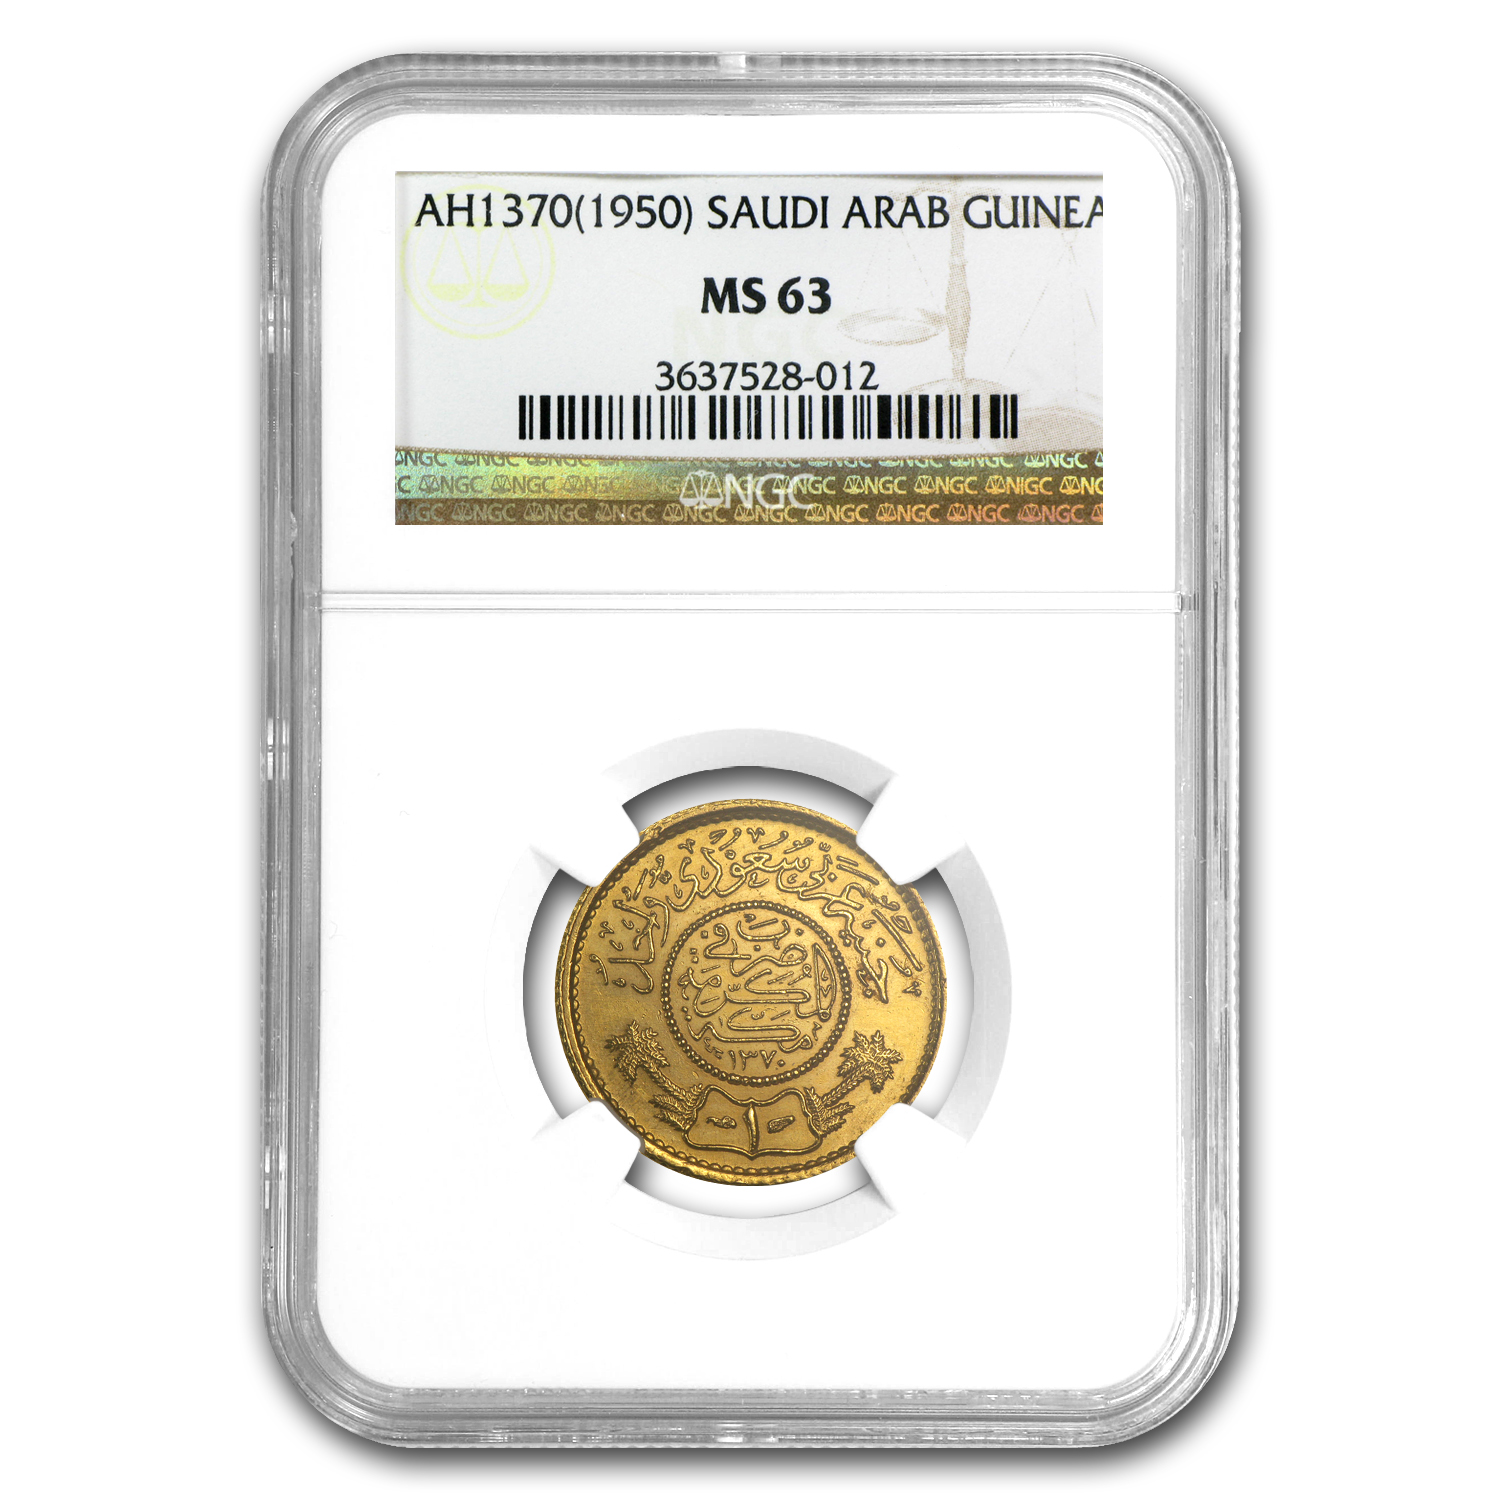 AH1370/1950 Saudi Arabia Gold One Guinea MS-63 NGC